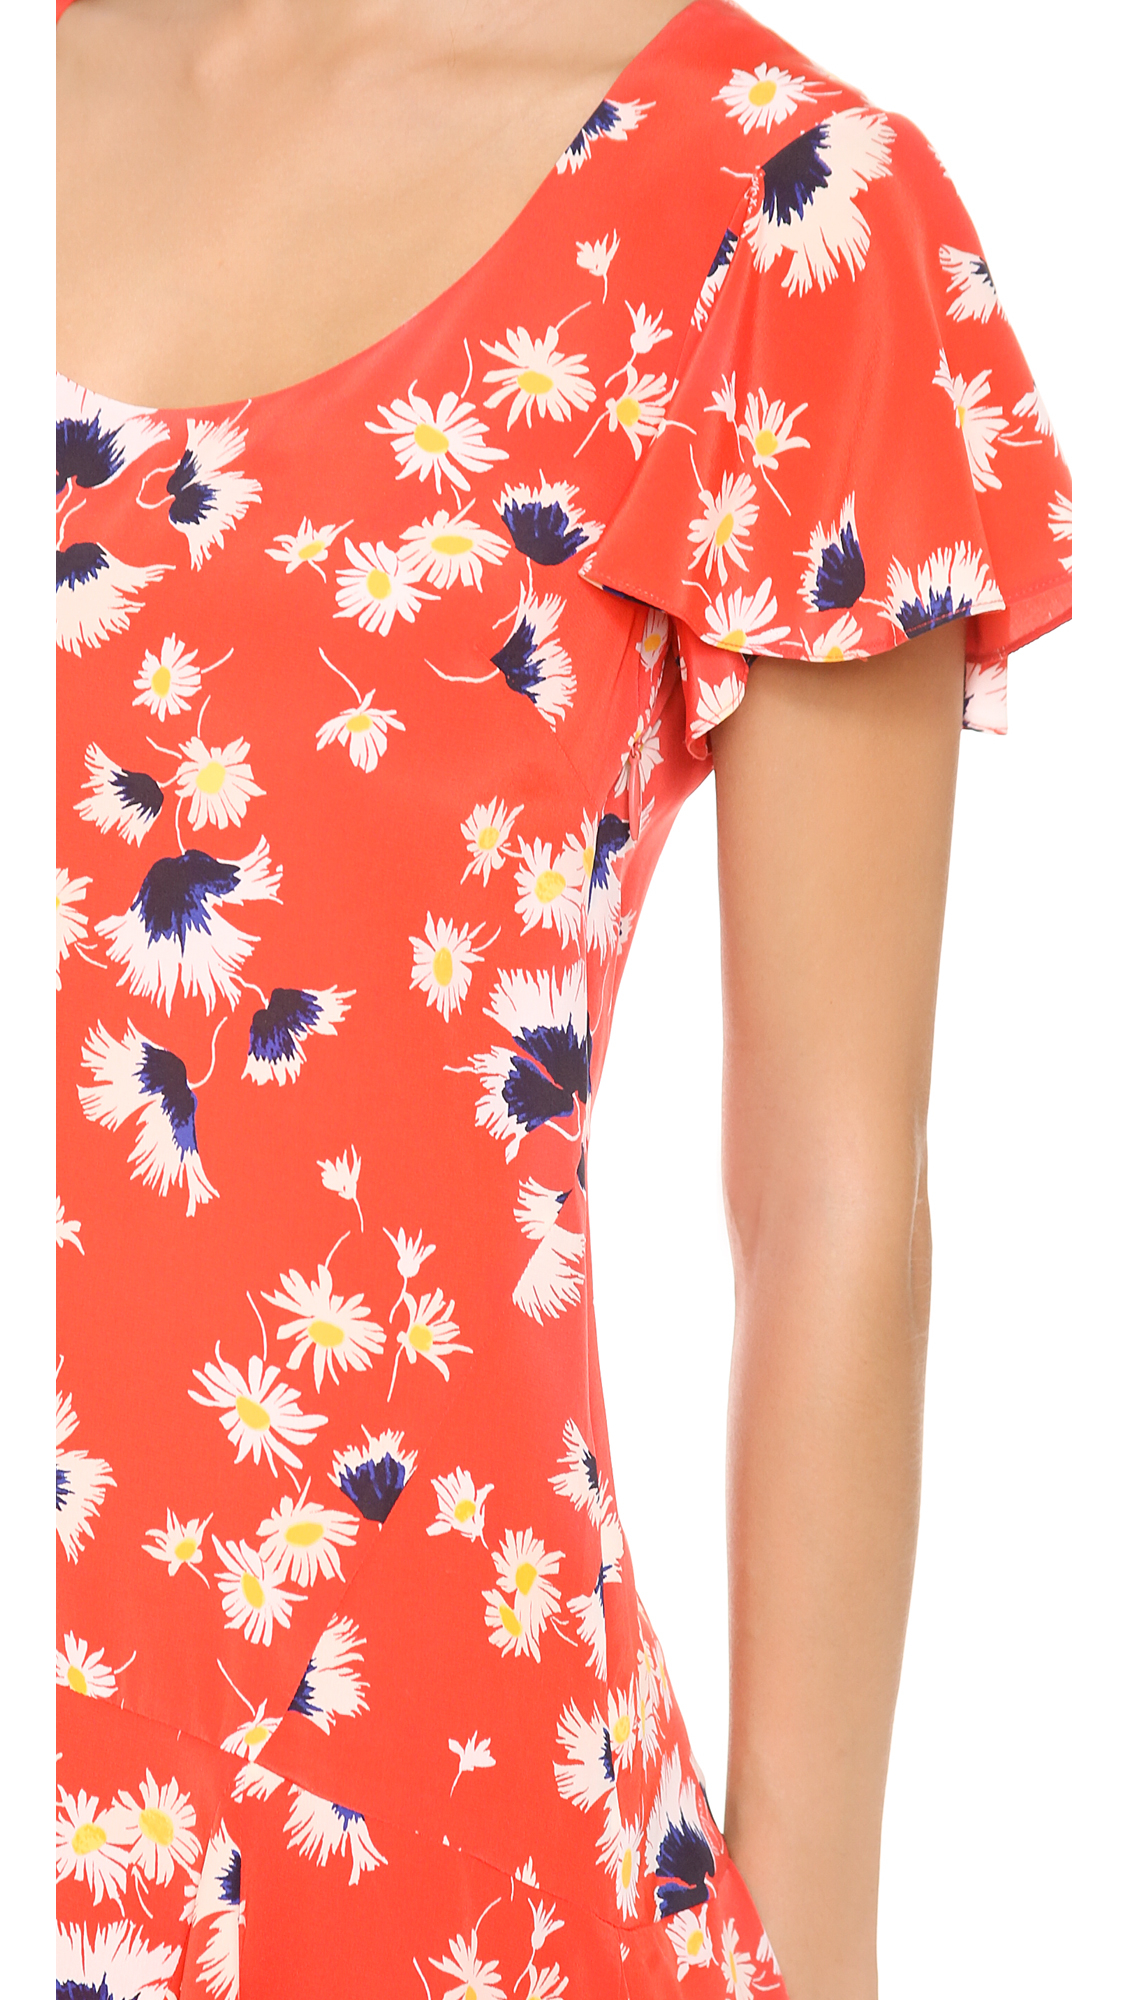 78e43c2dbc Juicy Couture Feather Floral Dress in Orange - Lyst